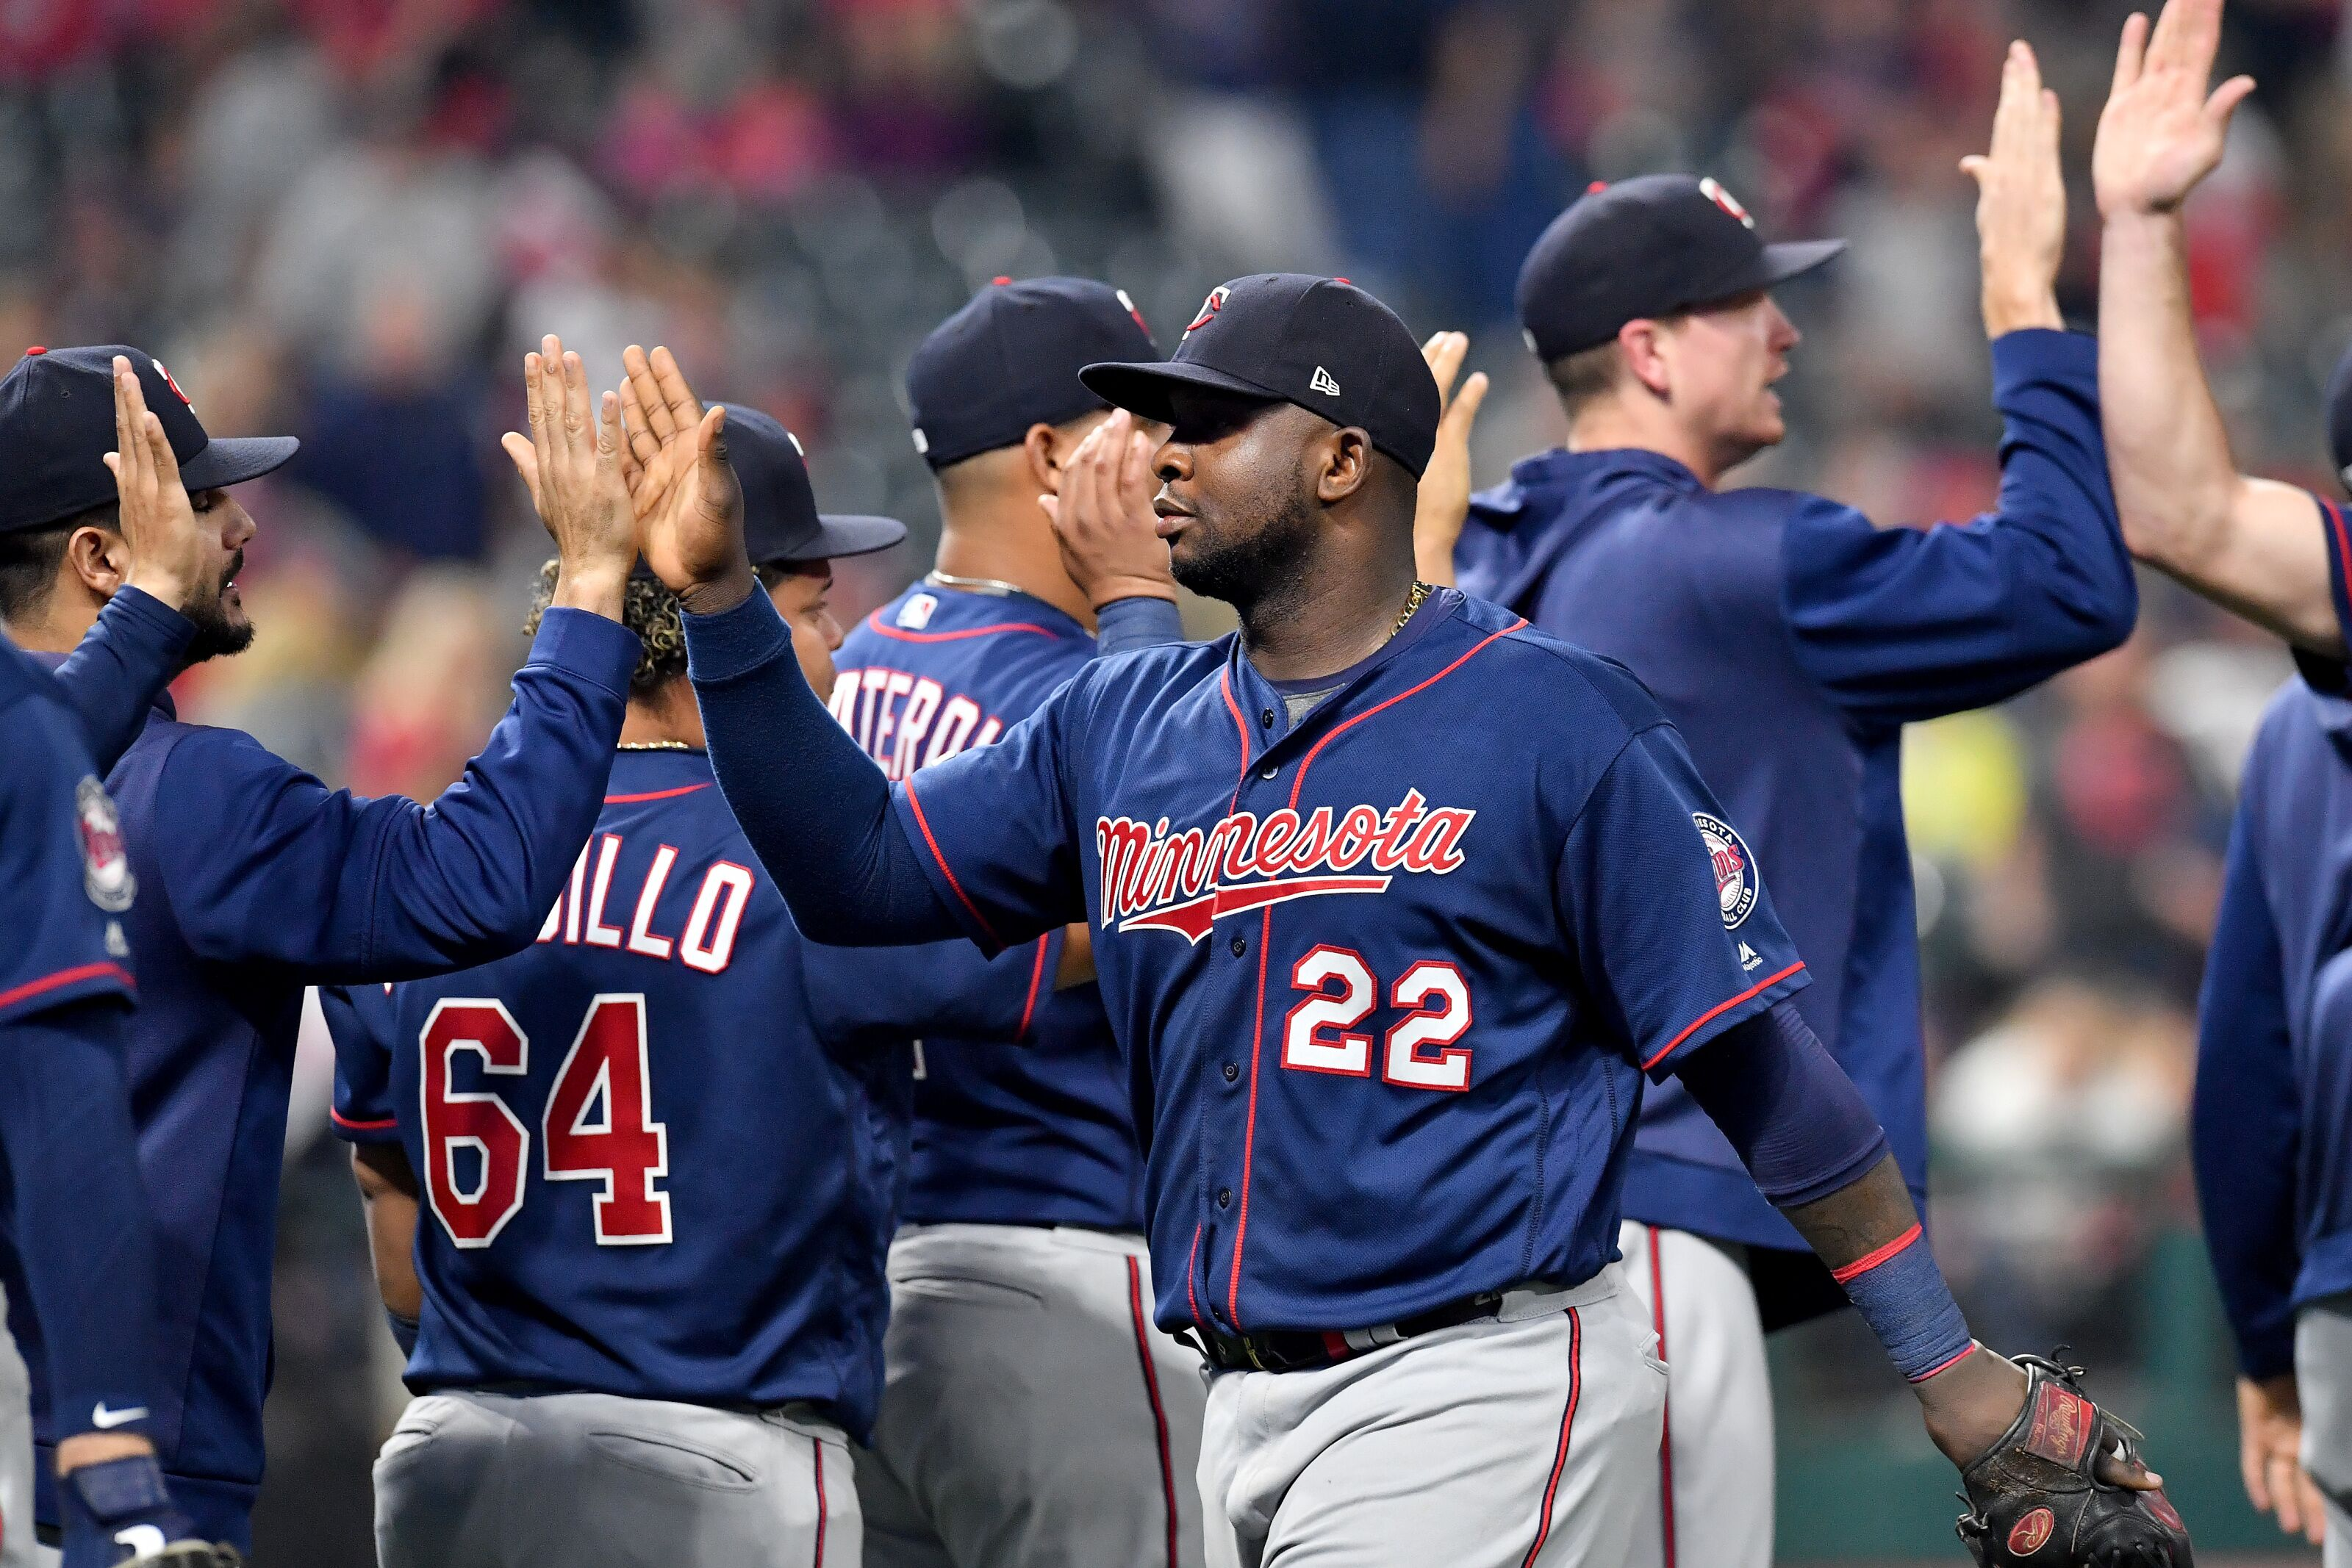 Minnesota Twins: 3 questions for their series against the Chicago White Sox